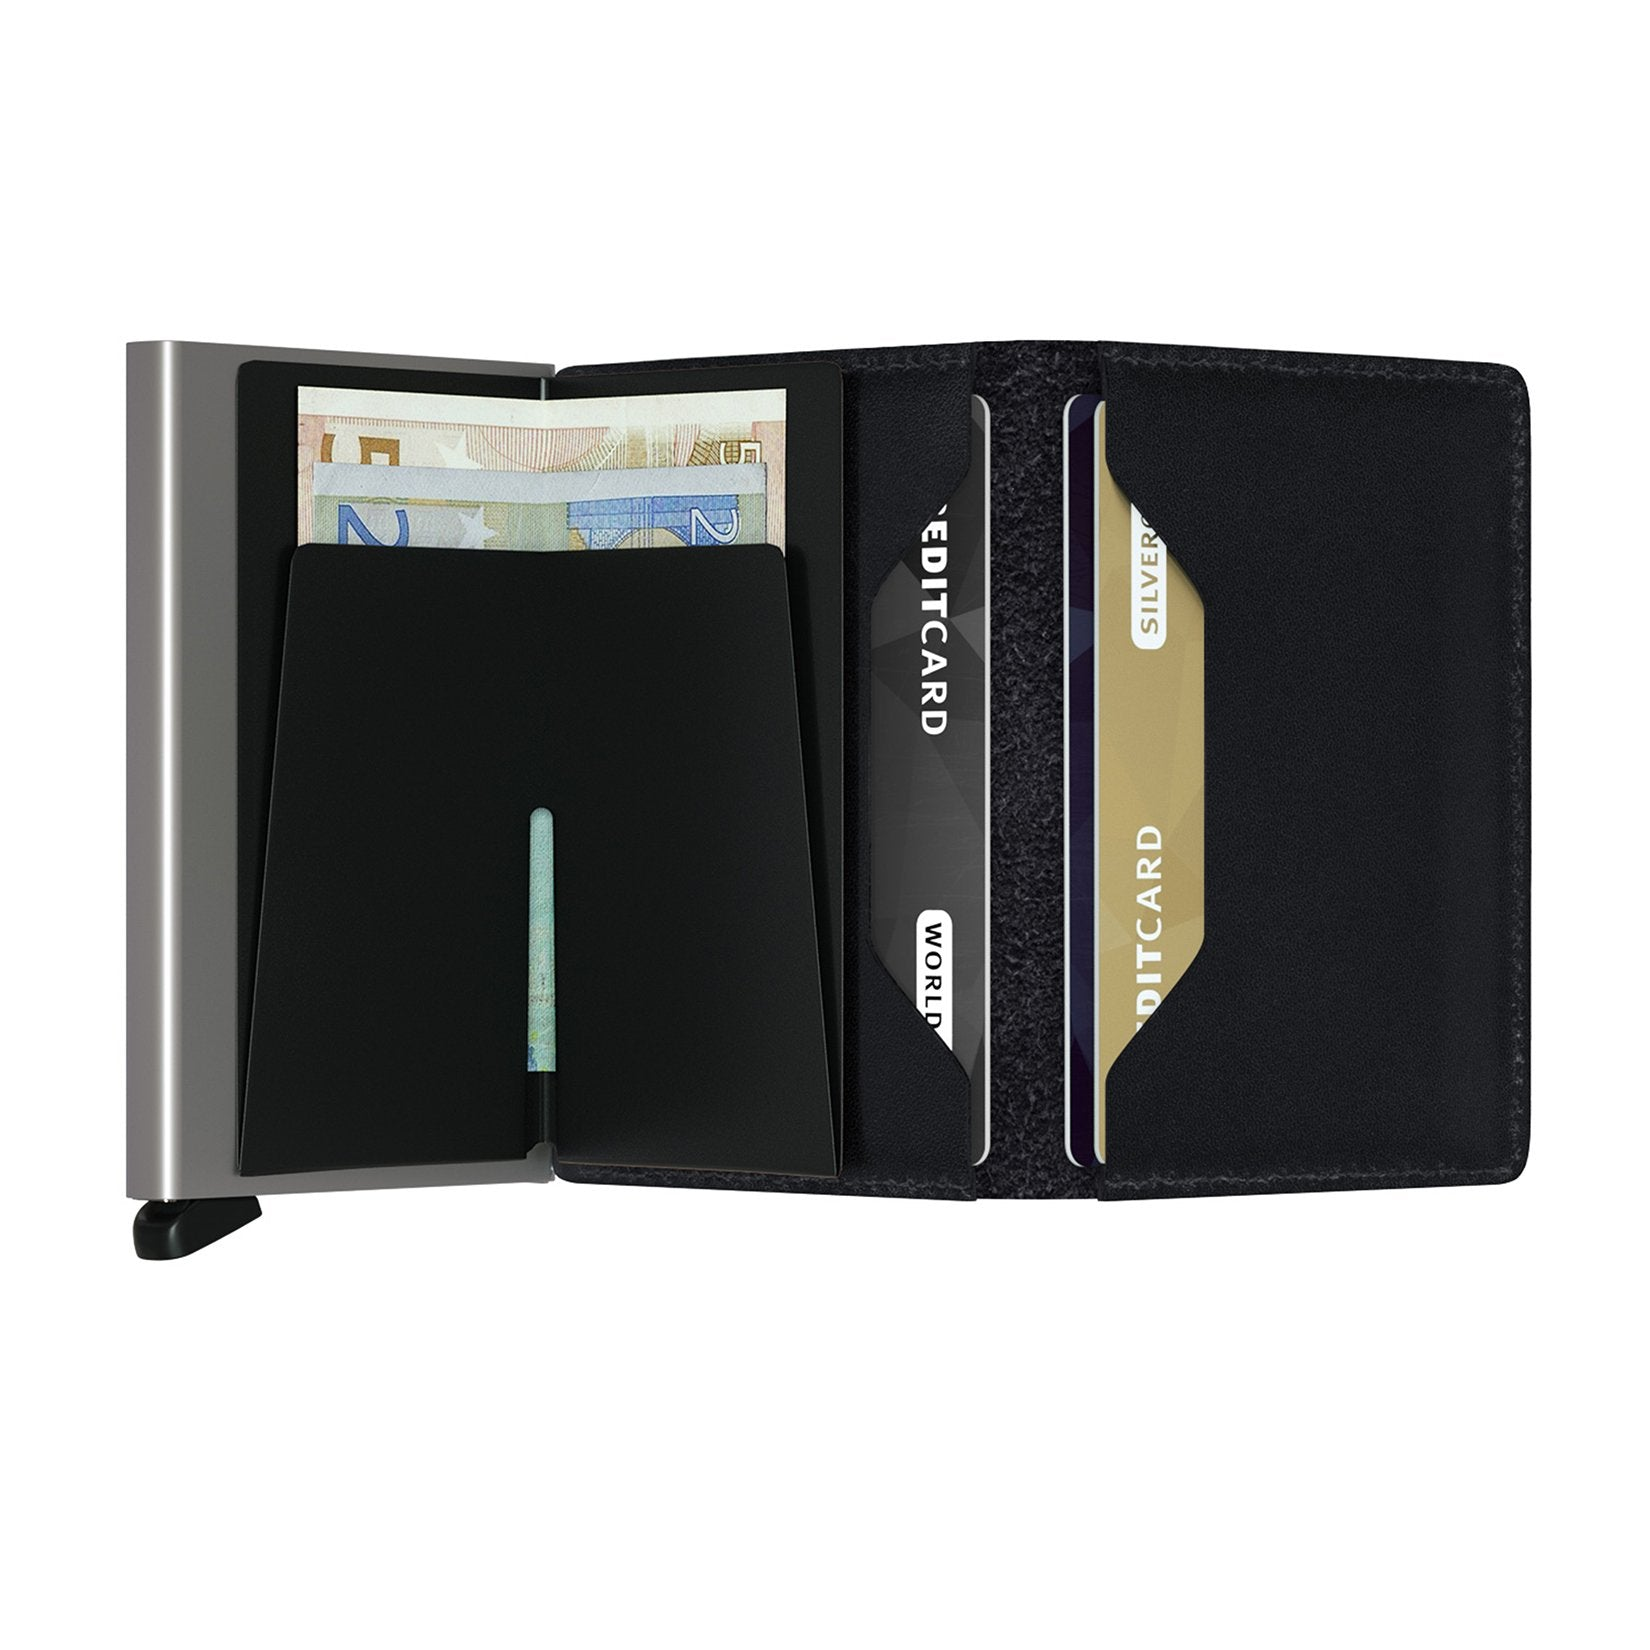 Slimwallet original black open with banknotes